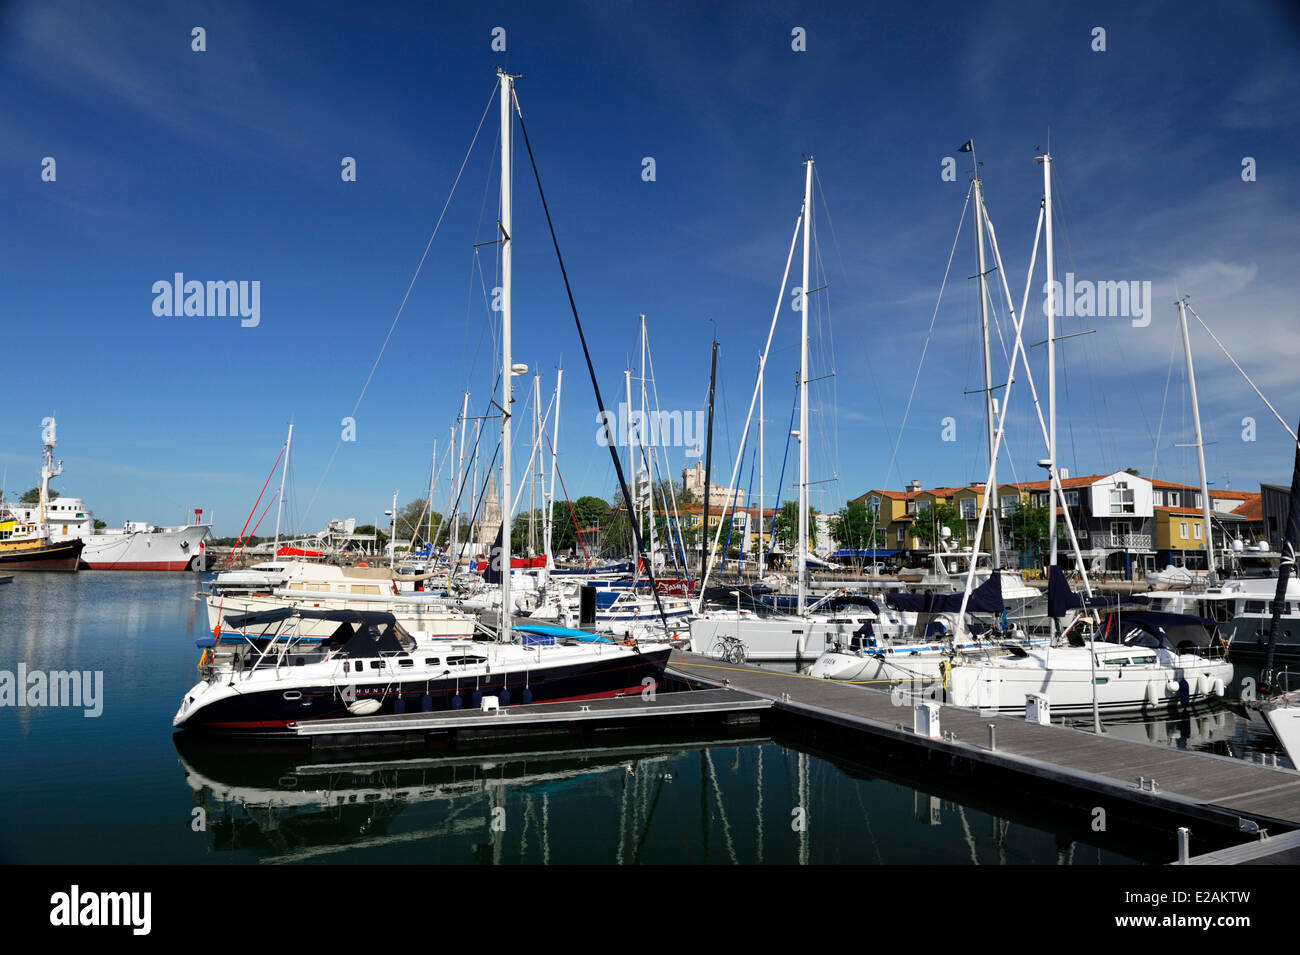 France, Charente Maritime, La Rochelle, yachting harbour - Stock Image